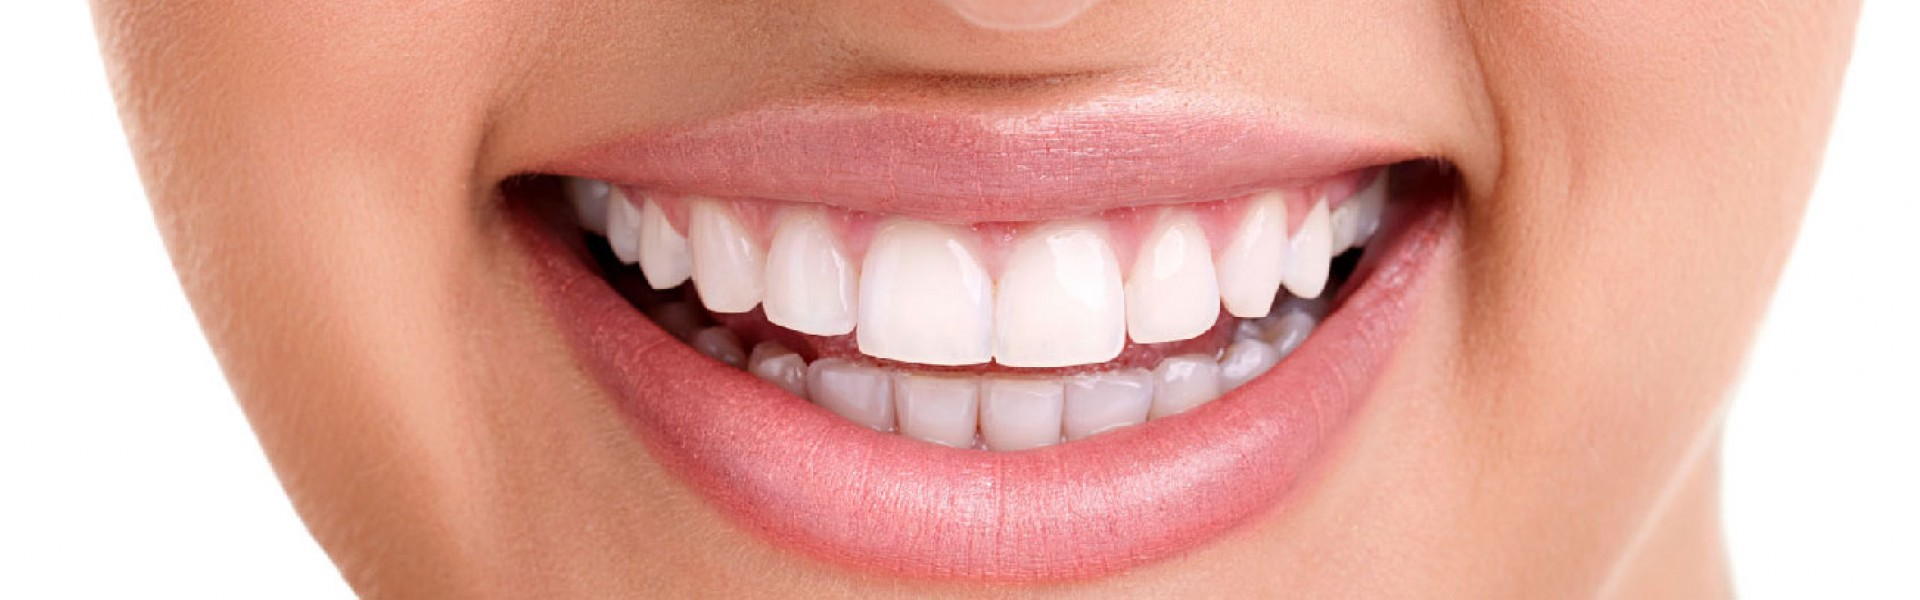 Gingivectomy/Gingival Smile